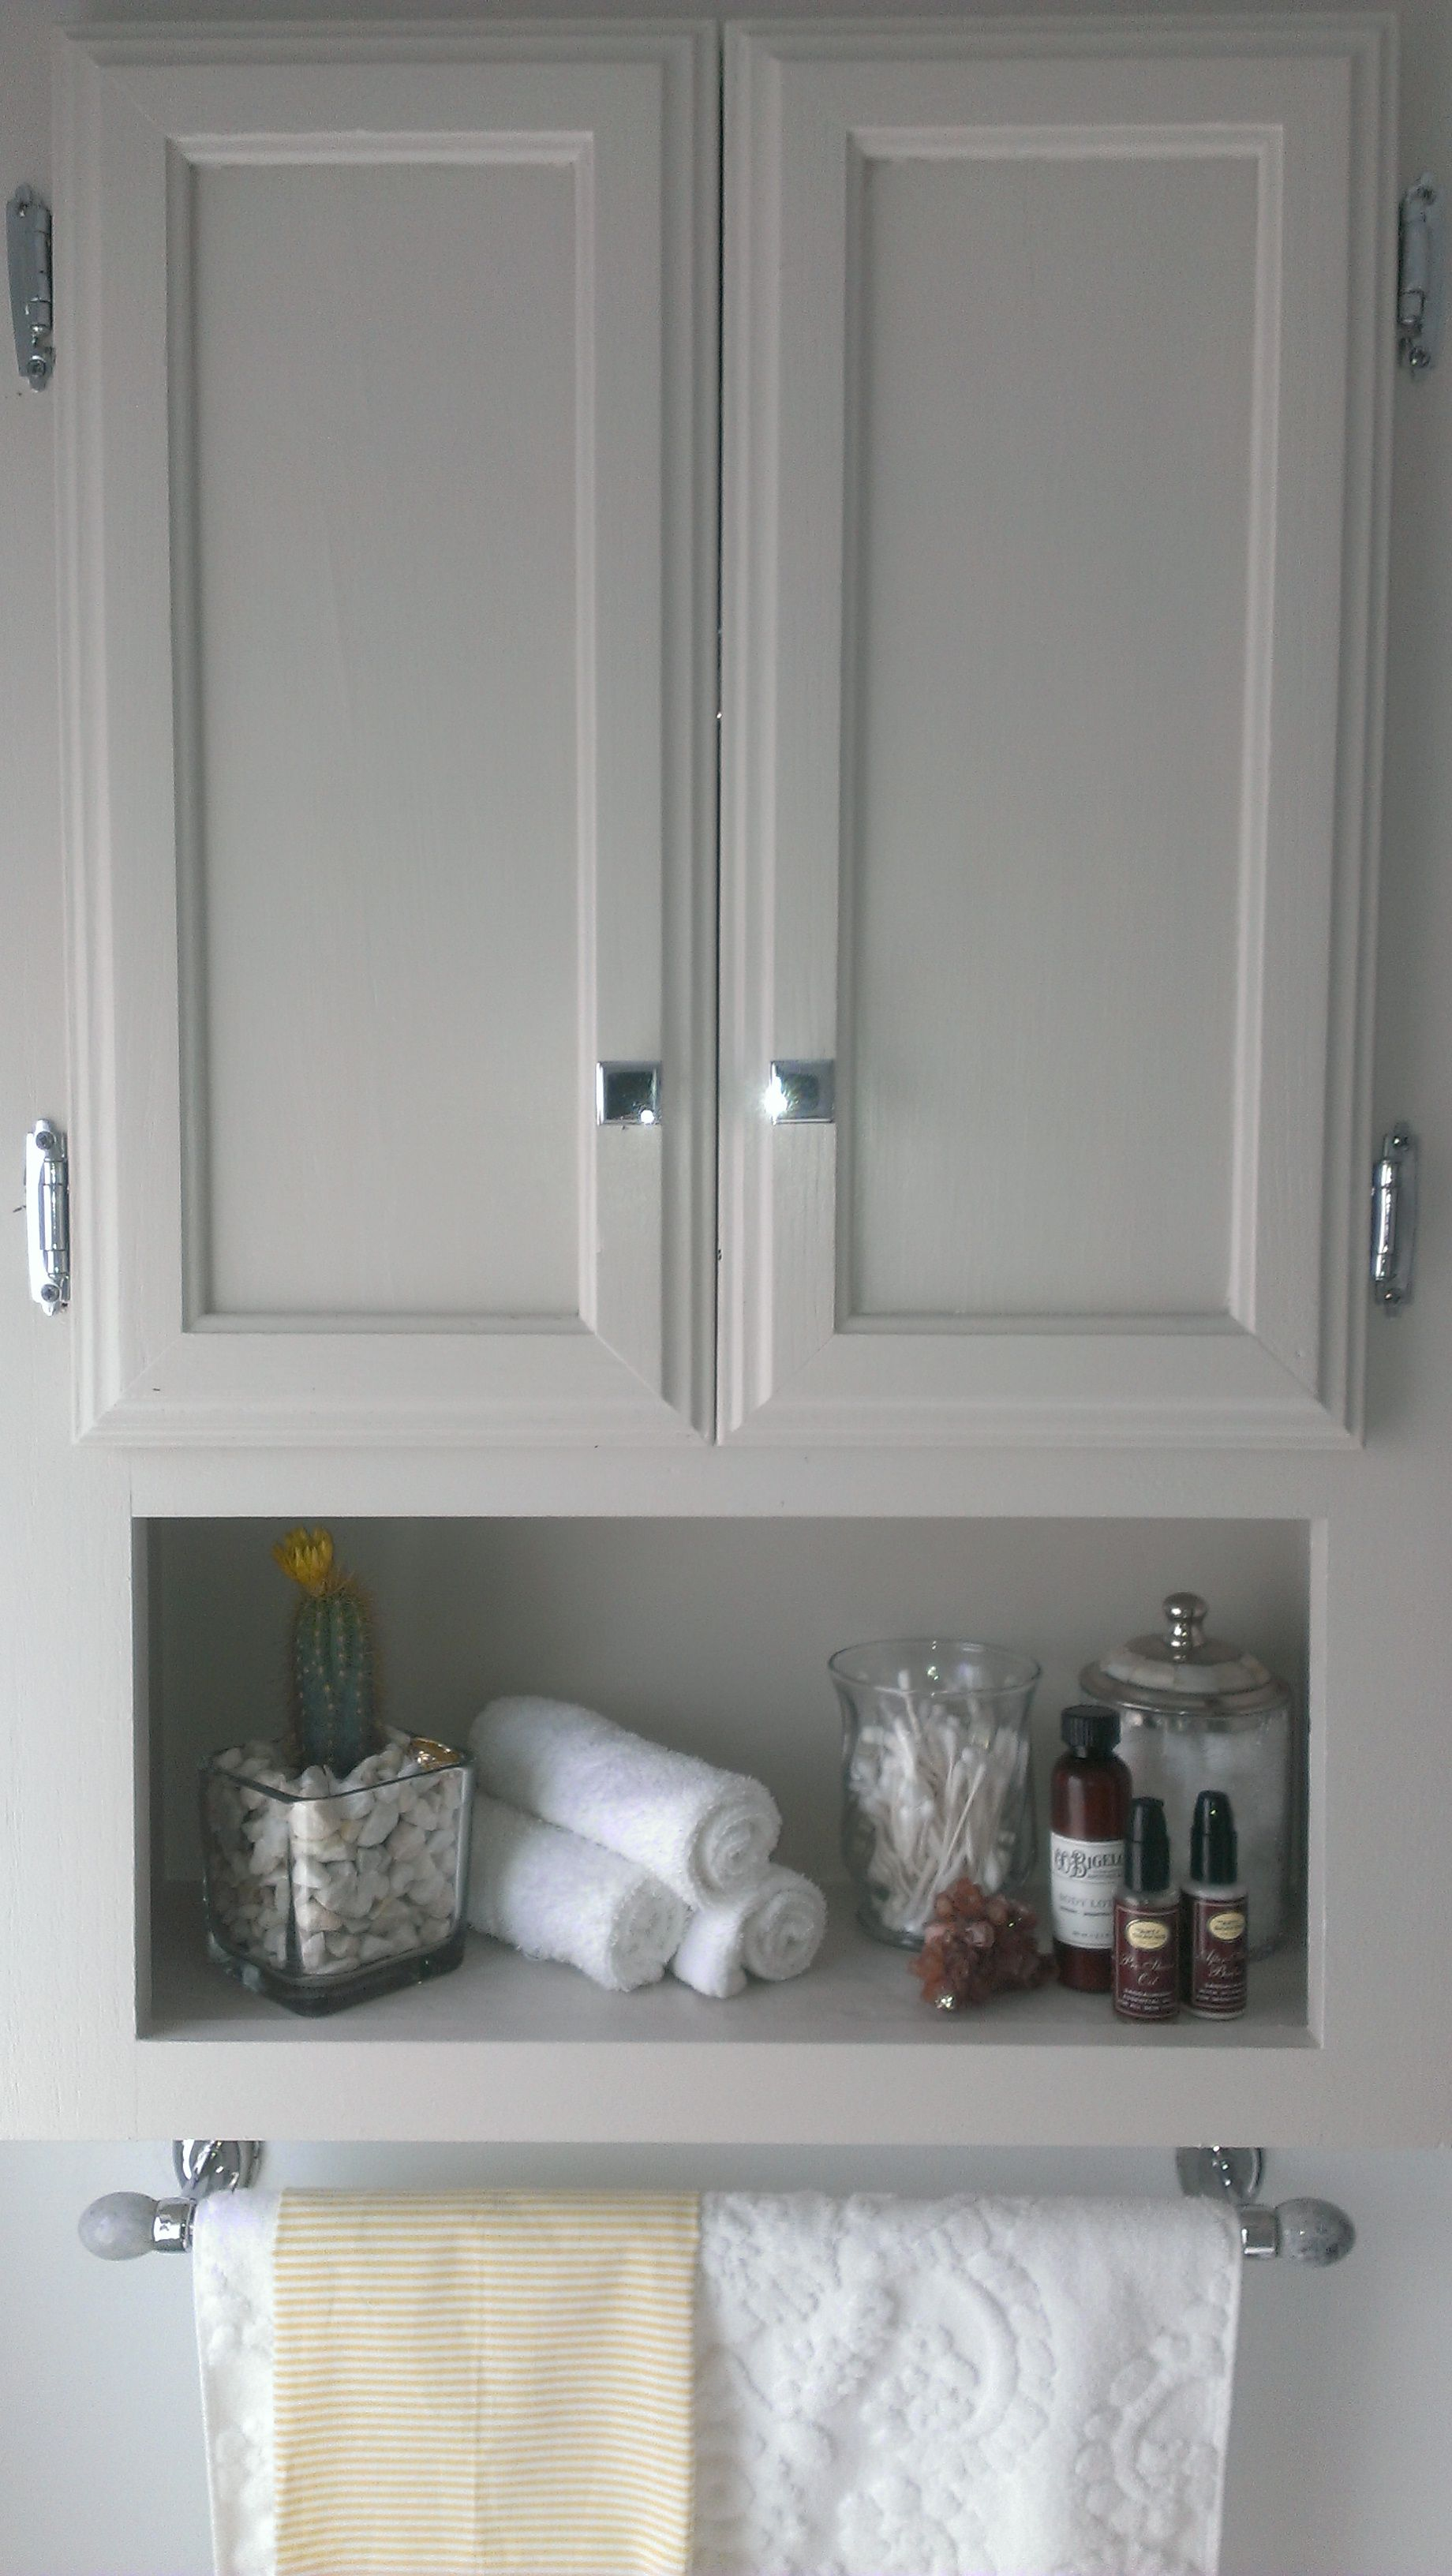 Elegant Restoration Hardware towel Bar